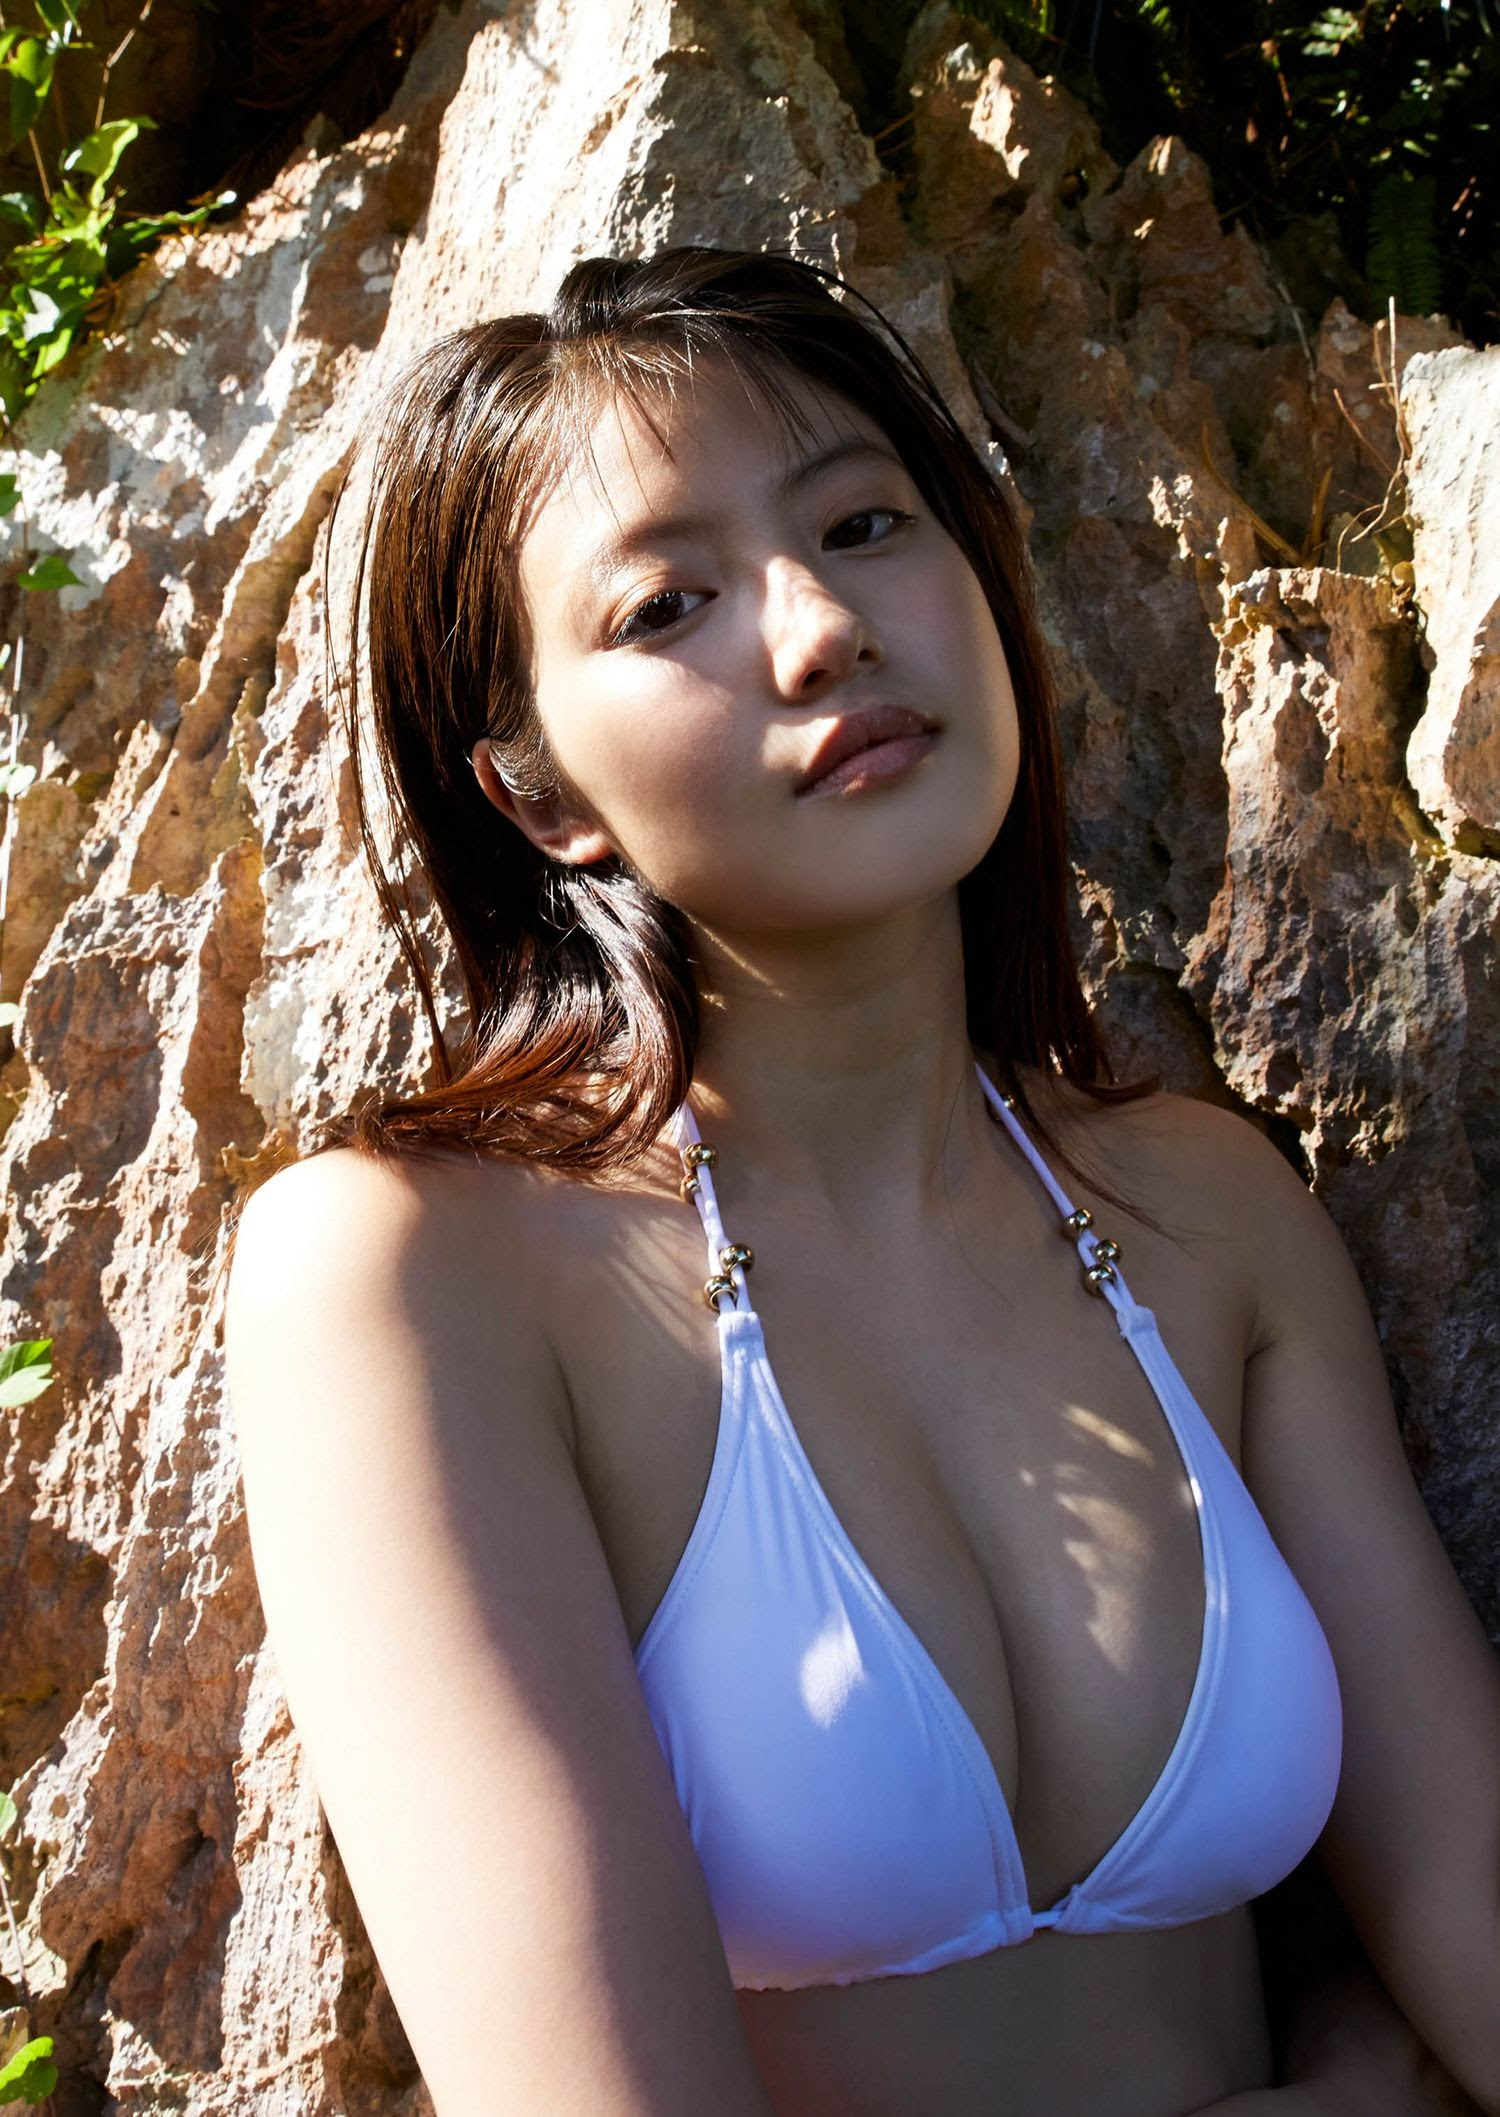 Without a doubt the youngest actress Mio Imada117